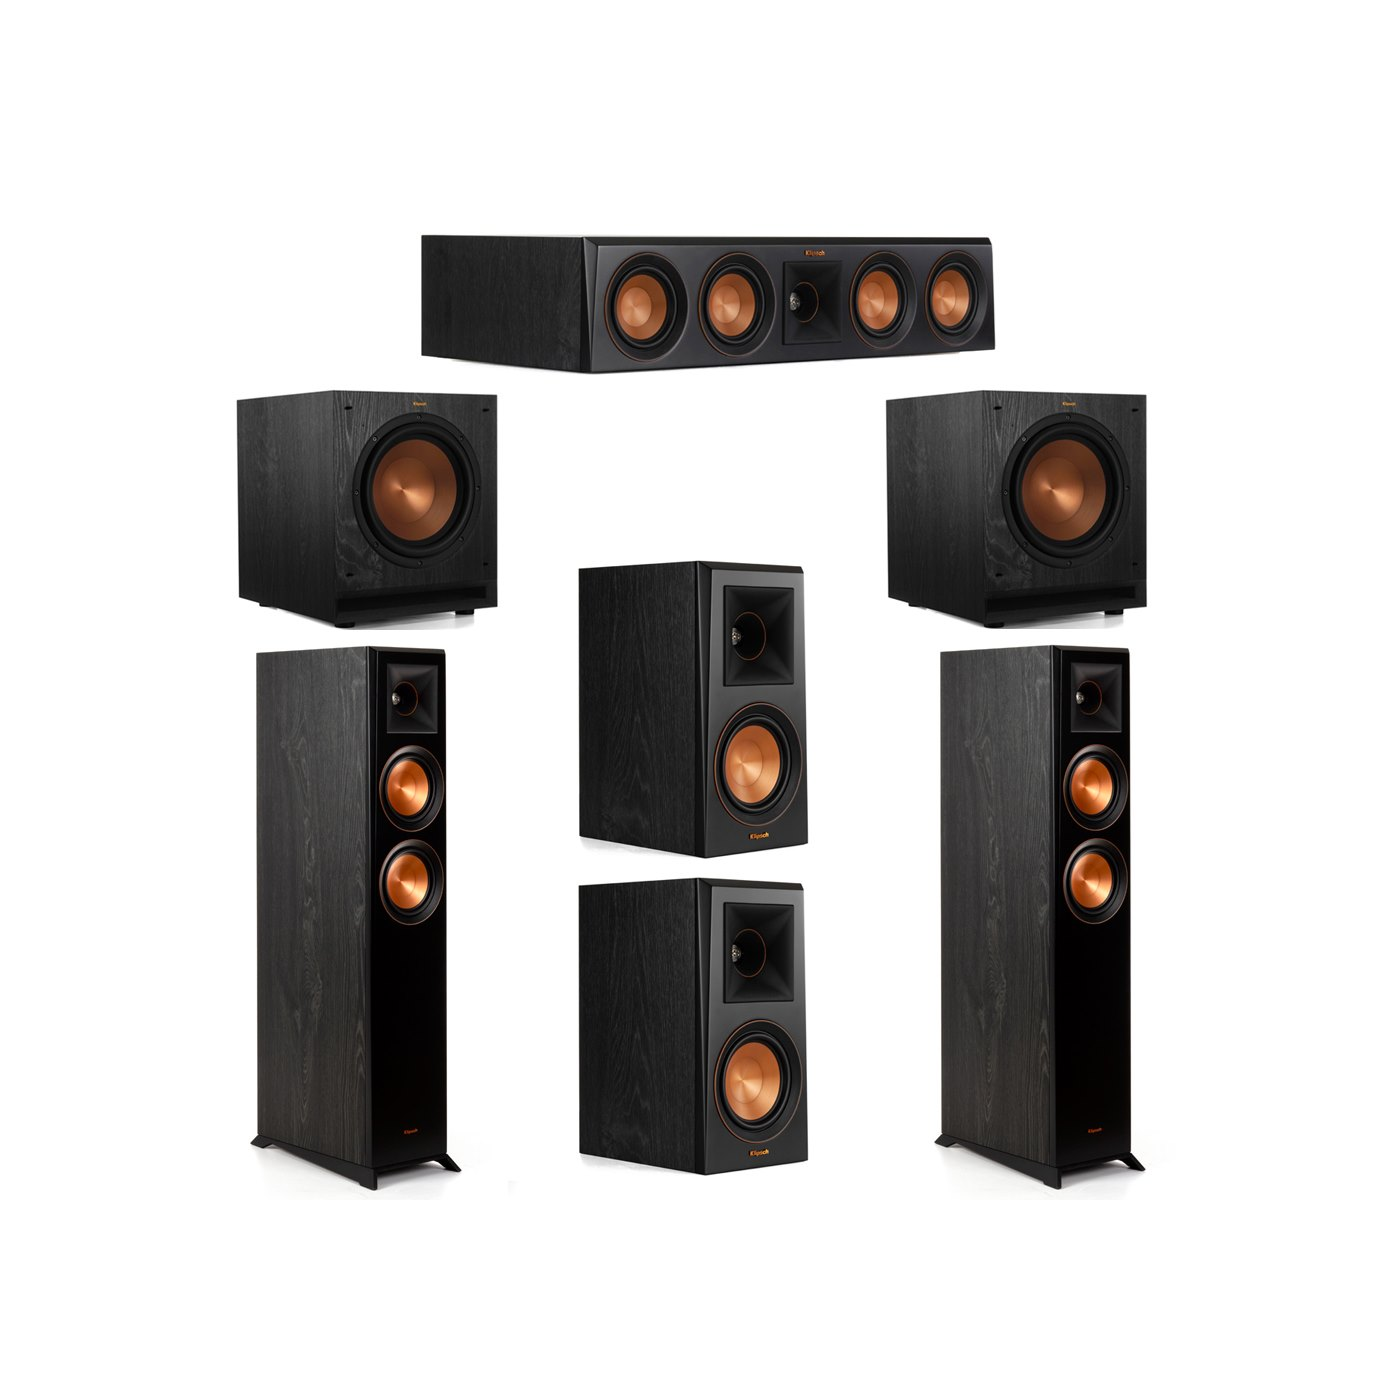 Klipsch 5.2 System with 2 RP-5000F Floorstanding Speakers, 1 Klipsch RP-404C Center Speaker, 2 Klipsch RP-500M Surround Speakers, 2 Klipsch SPL-100 Subwoofers